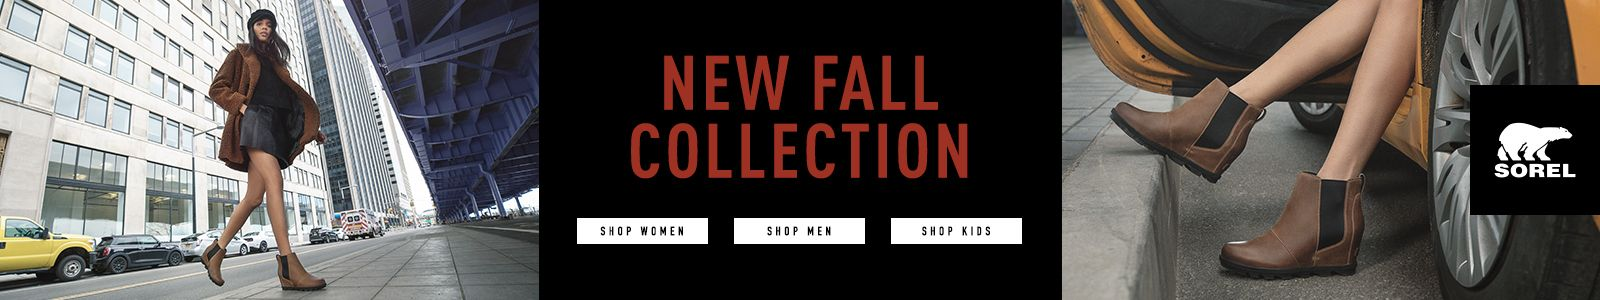 New Fall Collection, Shop Women, Shop men, Shop Kids, Sorel